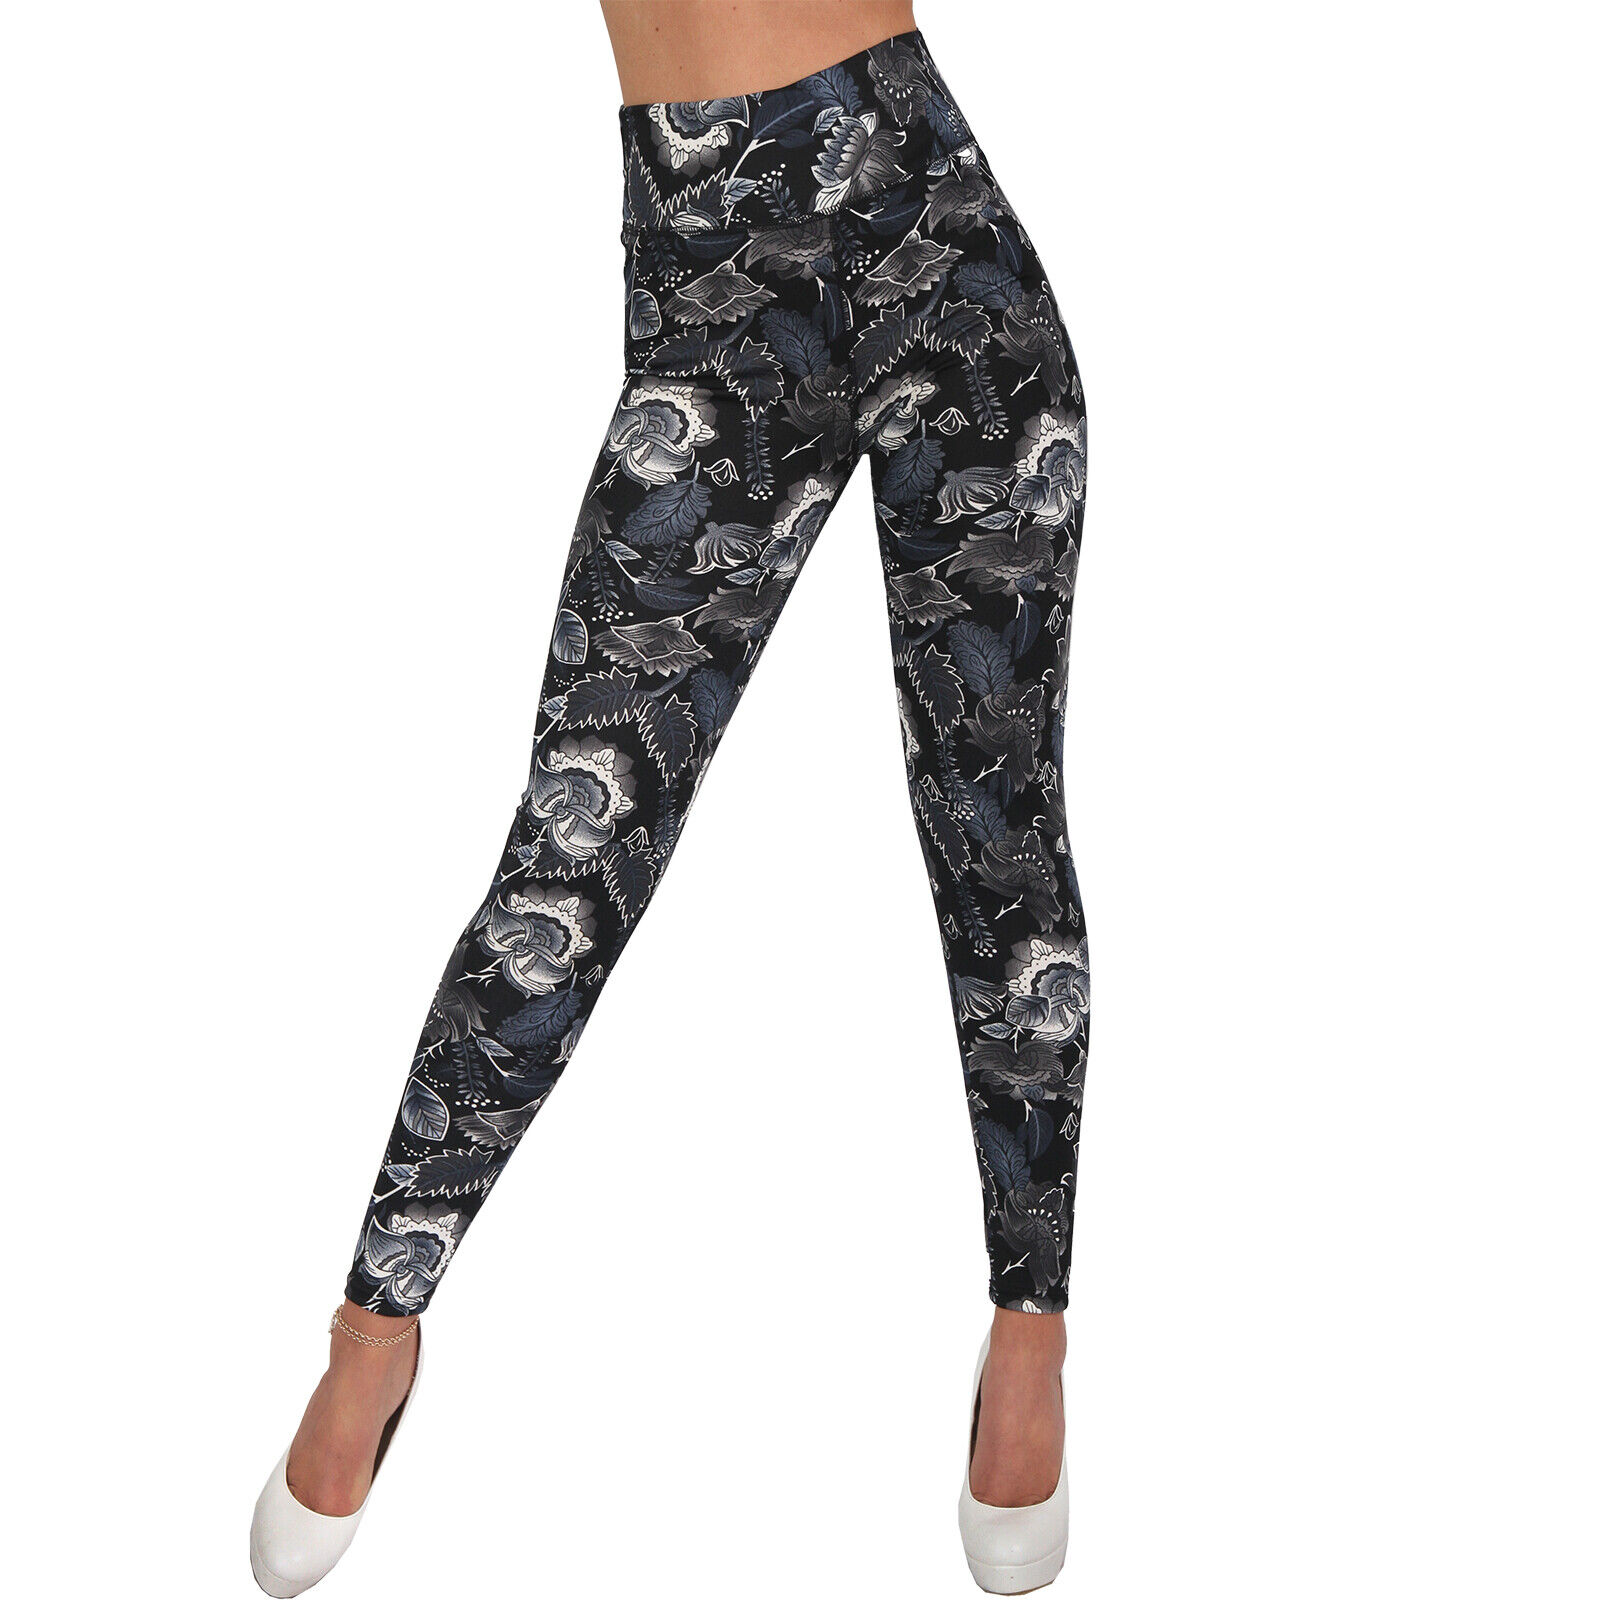 Yoga High Waist Sport Leggings Blumen Blätter Trainingshose Fitness Hose Jogging